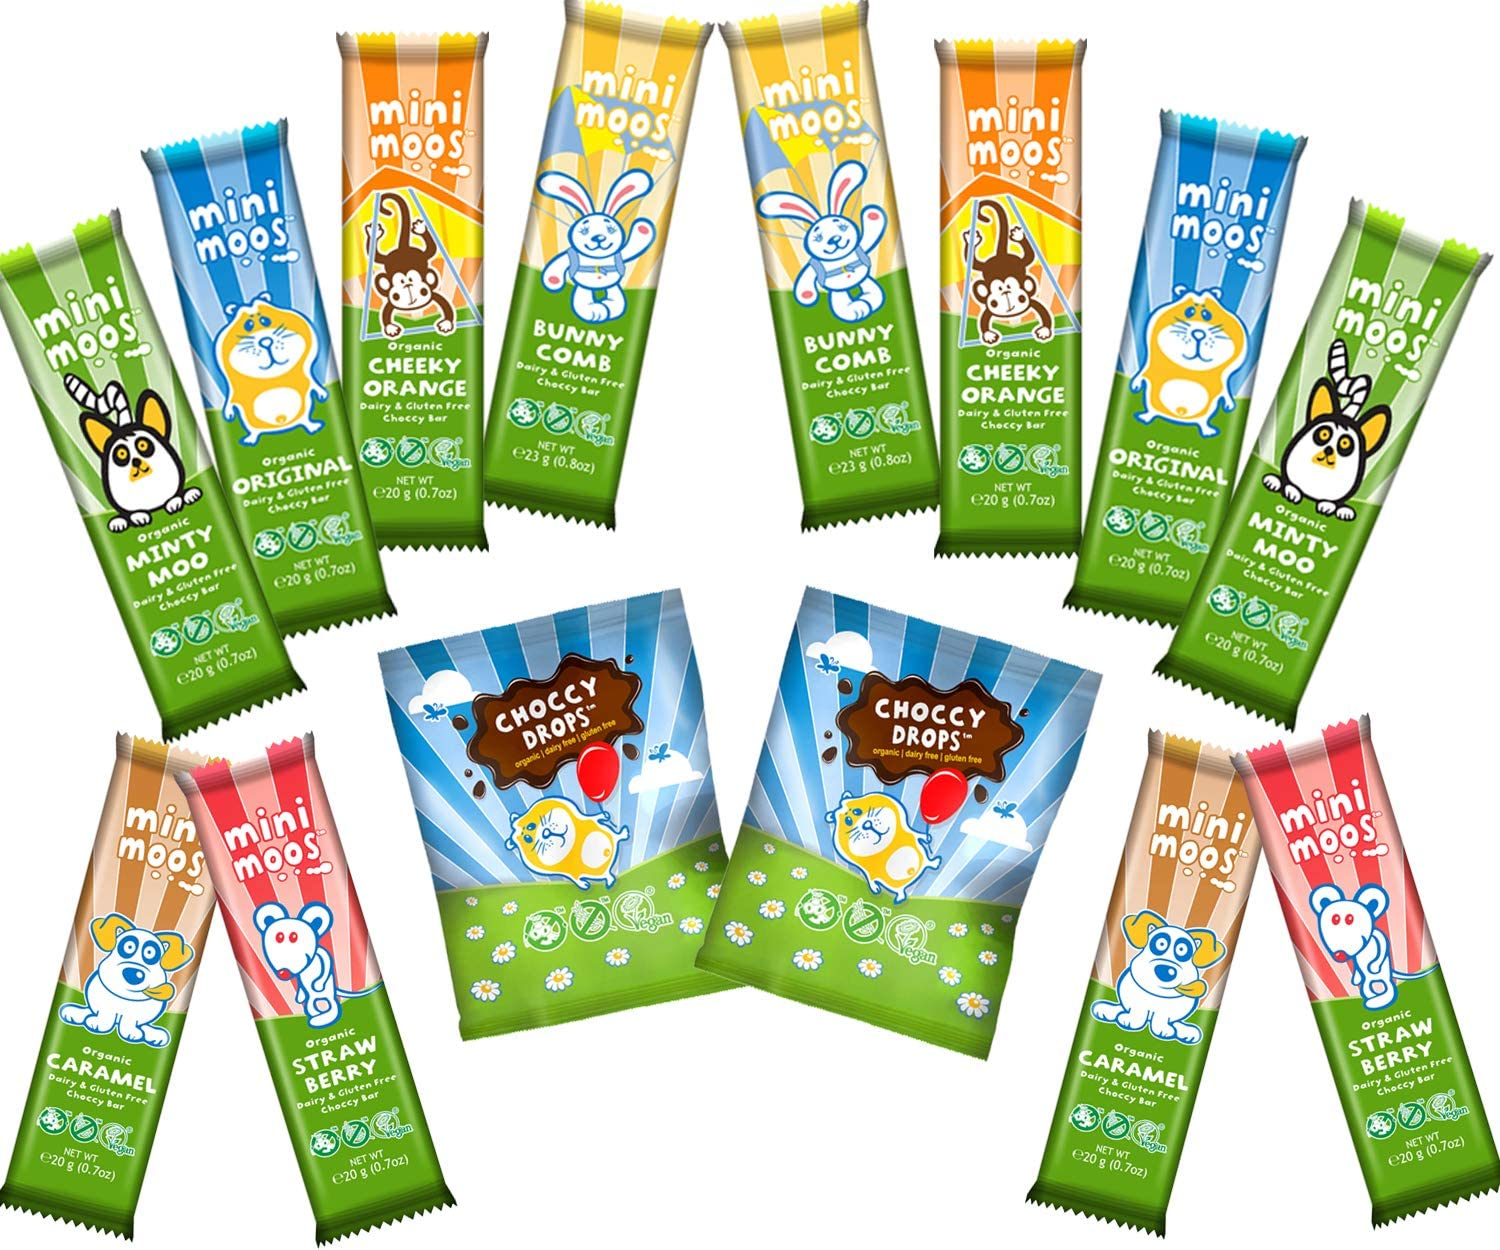 Moo Free Chocolate 14 x Items Mixed Case-Mini Moo Choco Drops